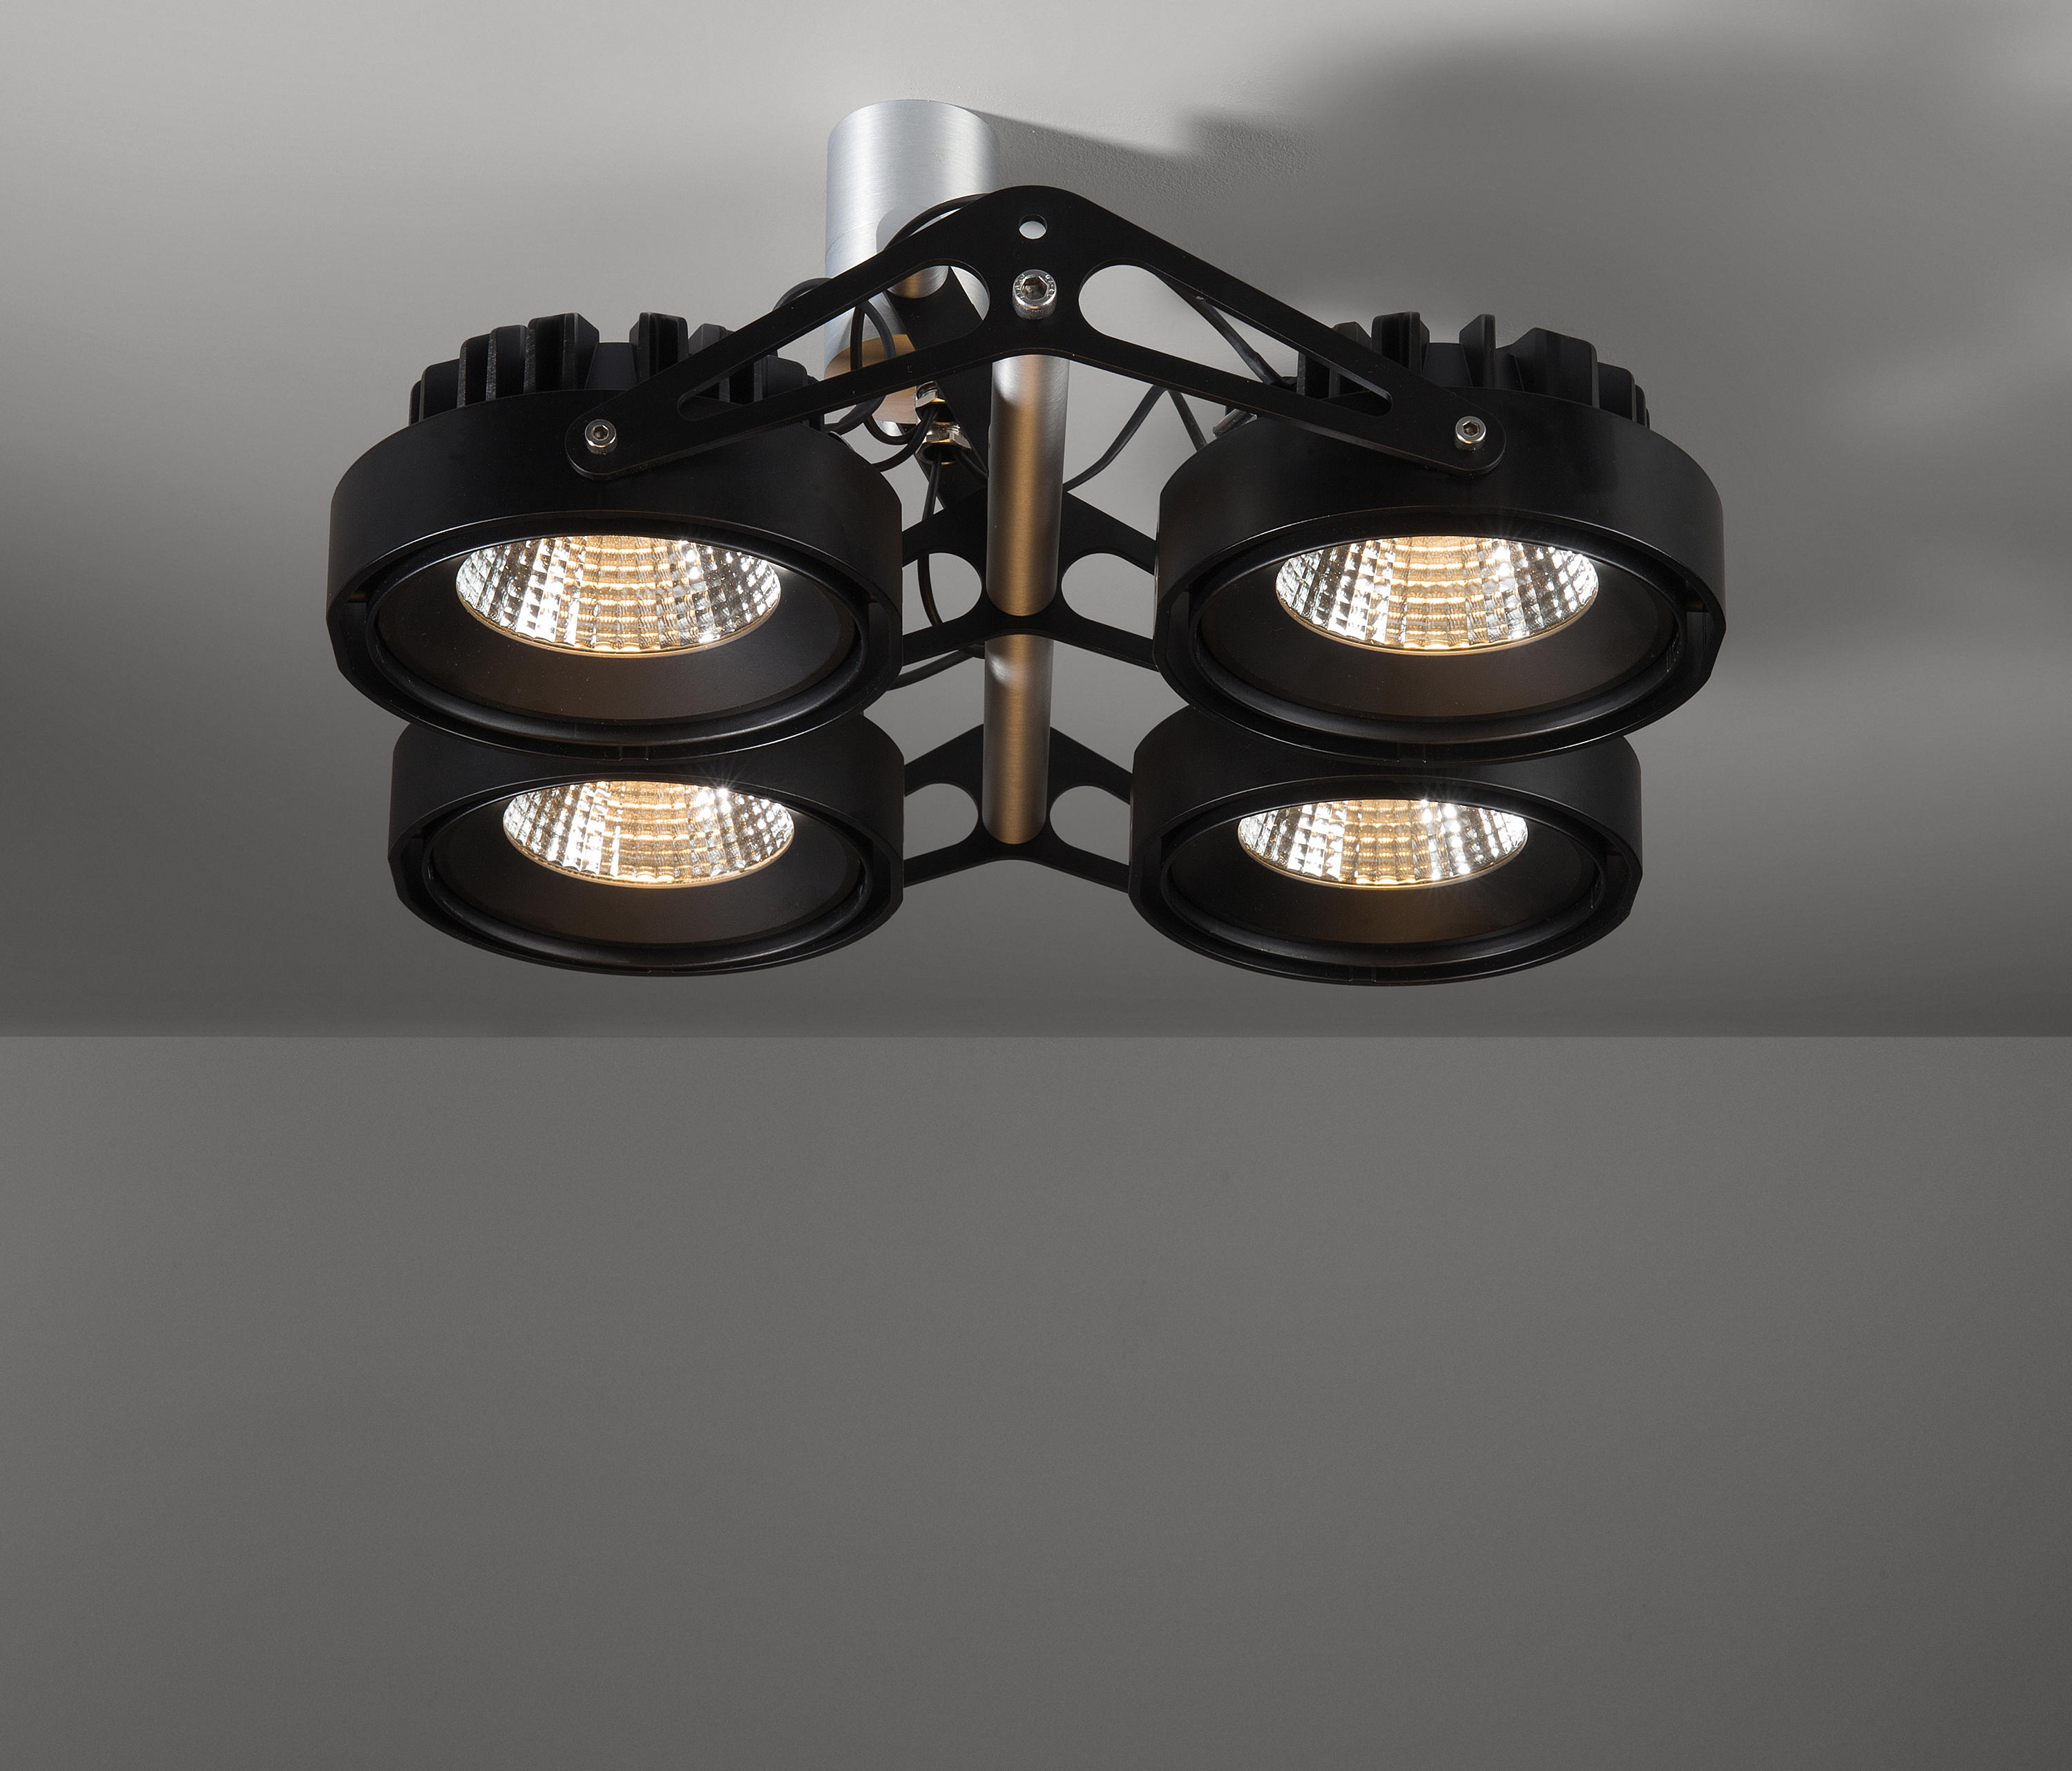 NOMAD 111 4X LED GE - Ceiling-mounted spotlights from Modular ...